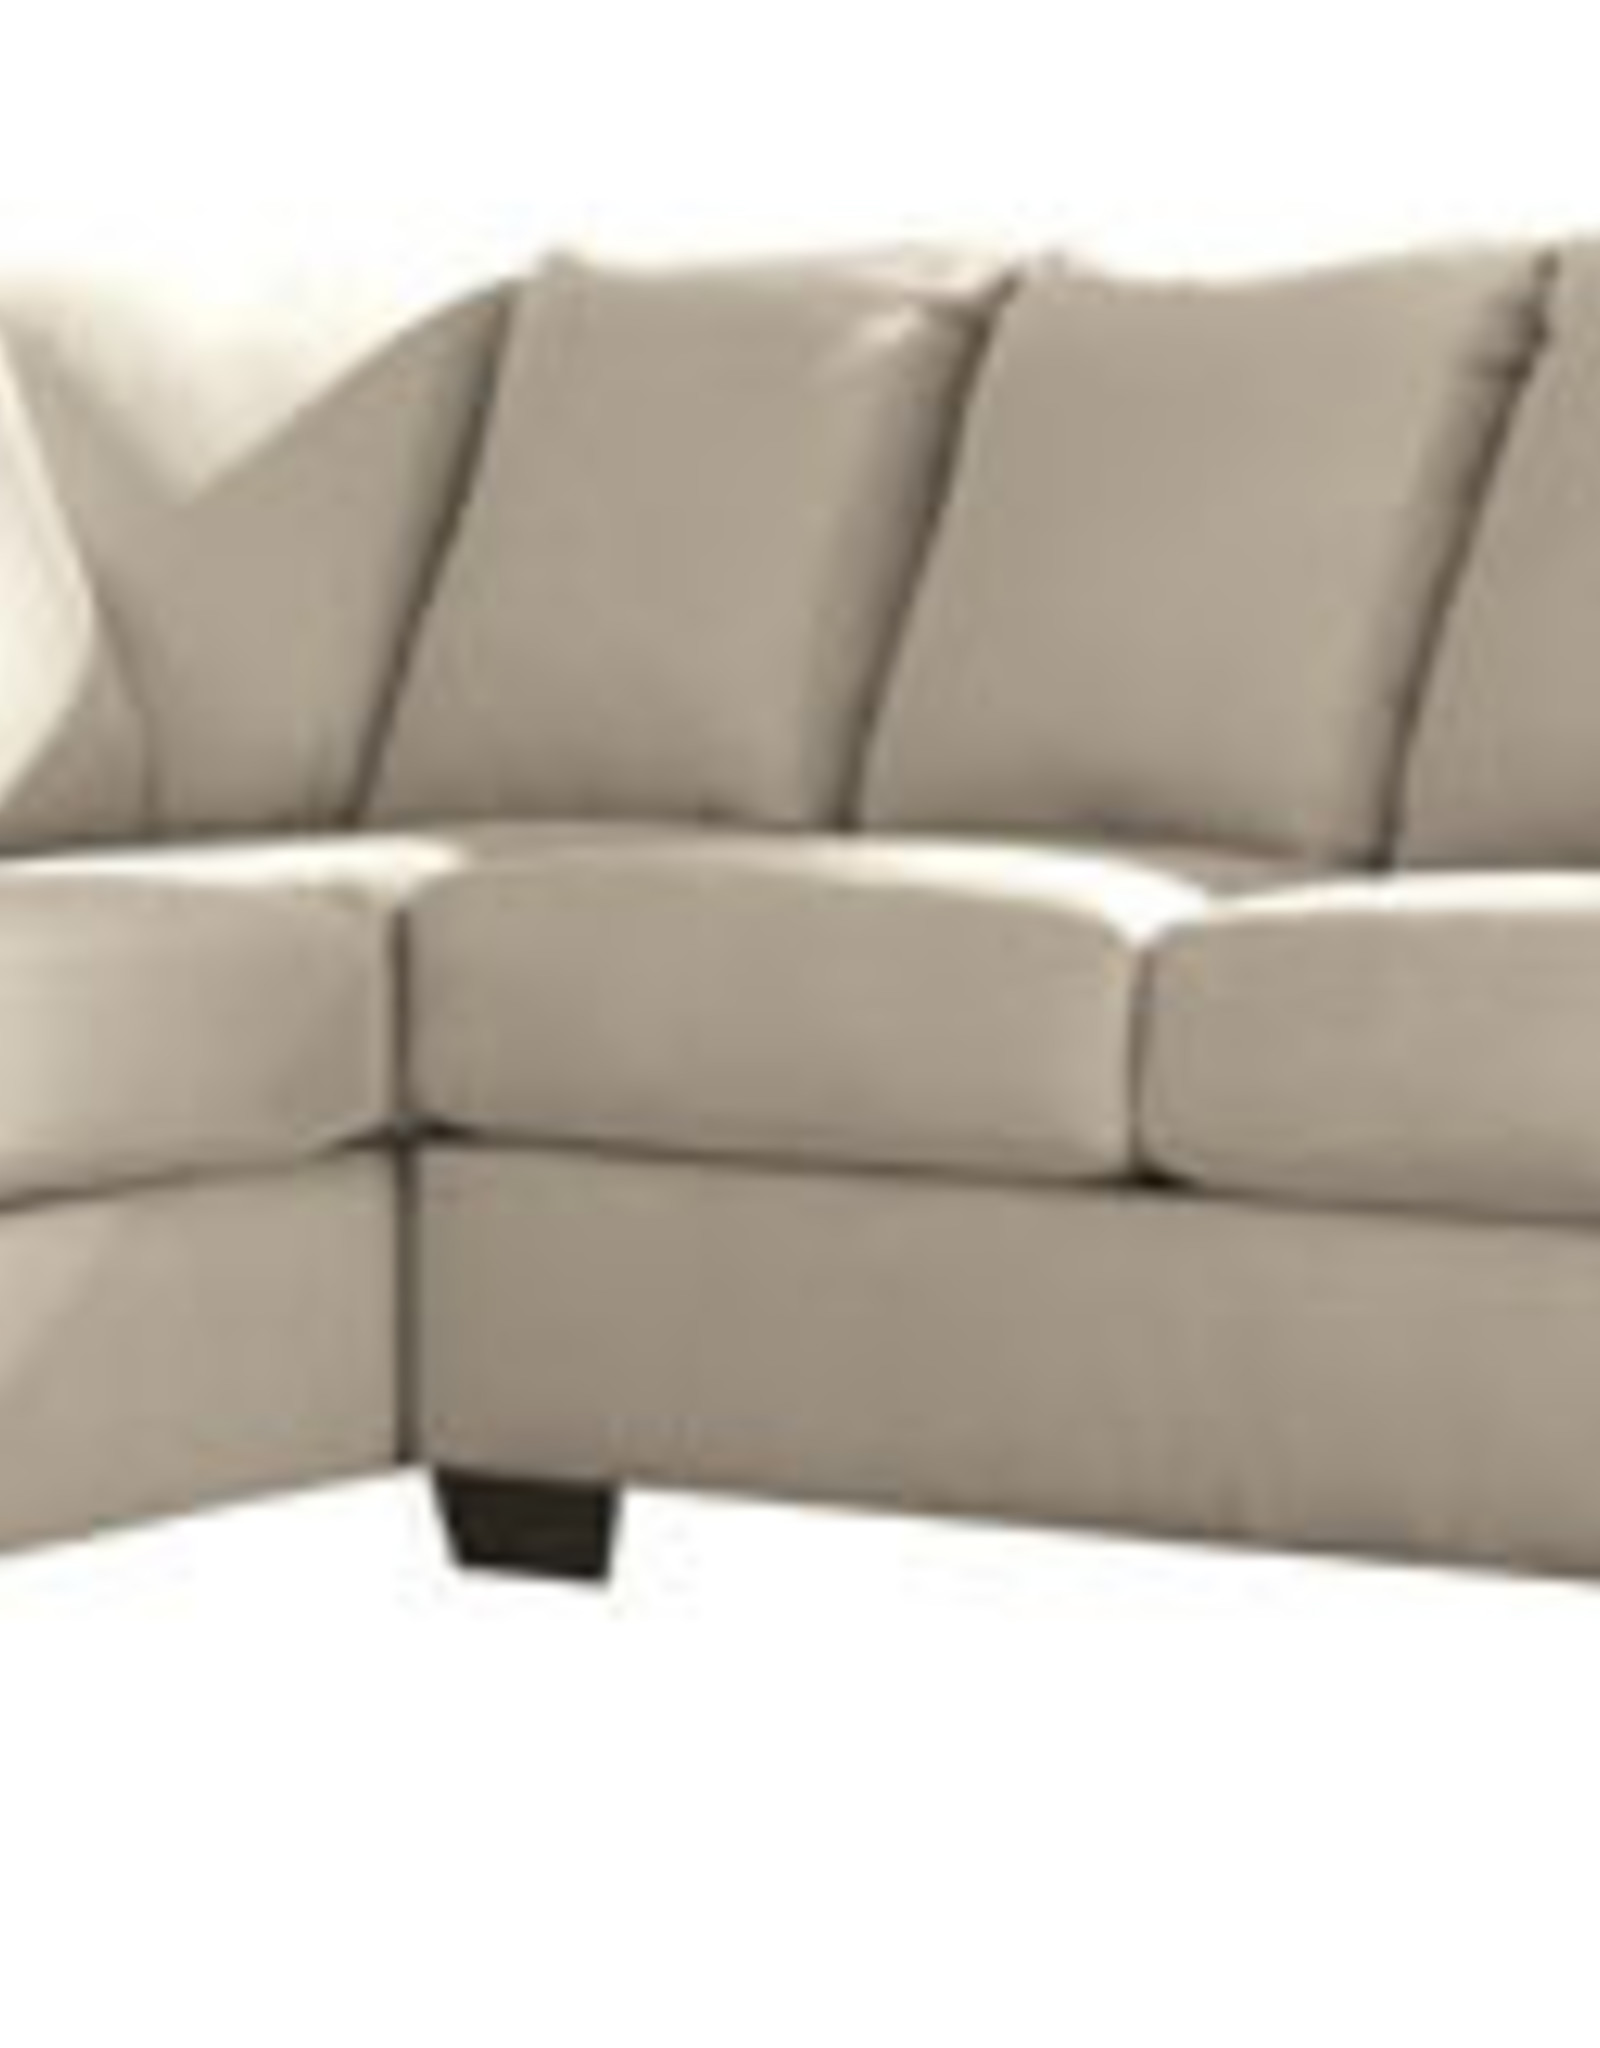 Darcy Sofa (Stone) Displayed in Showroom in Black